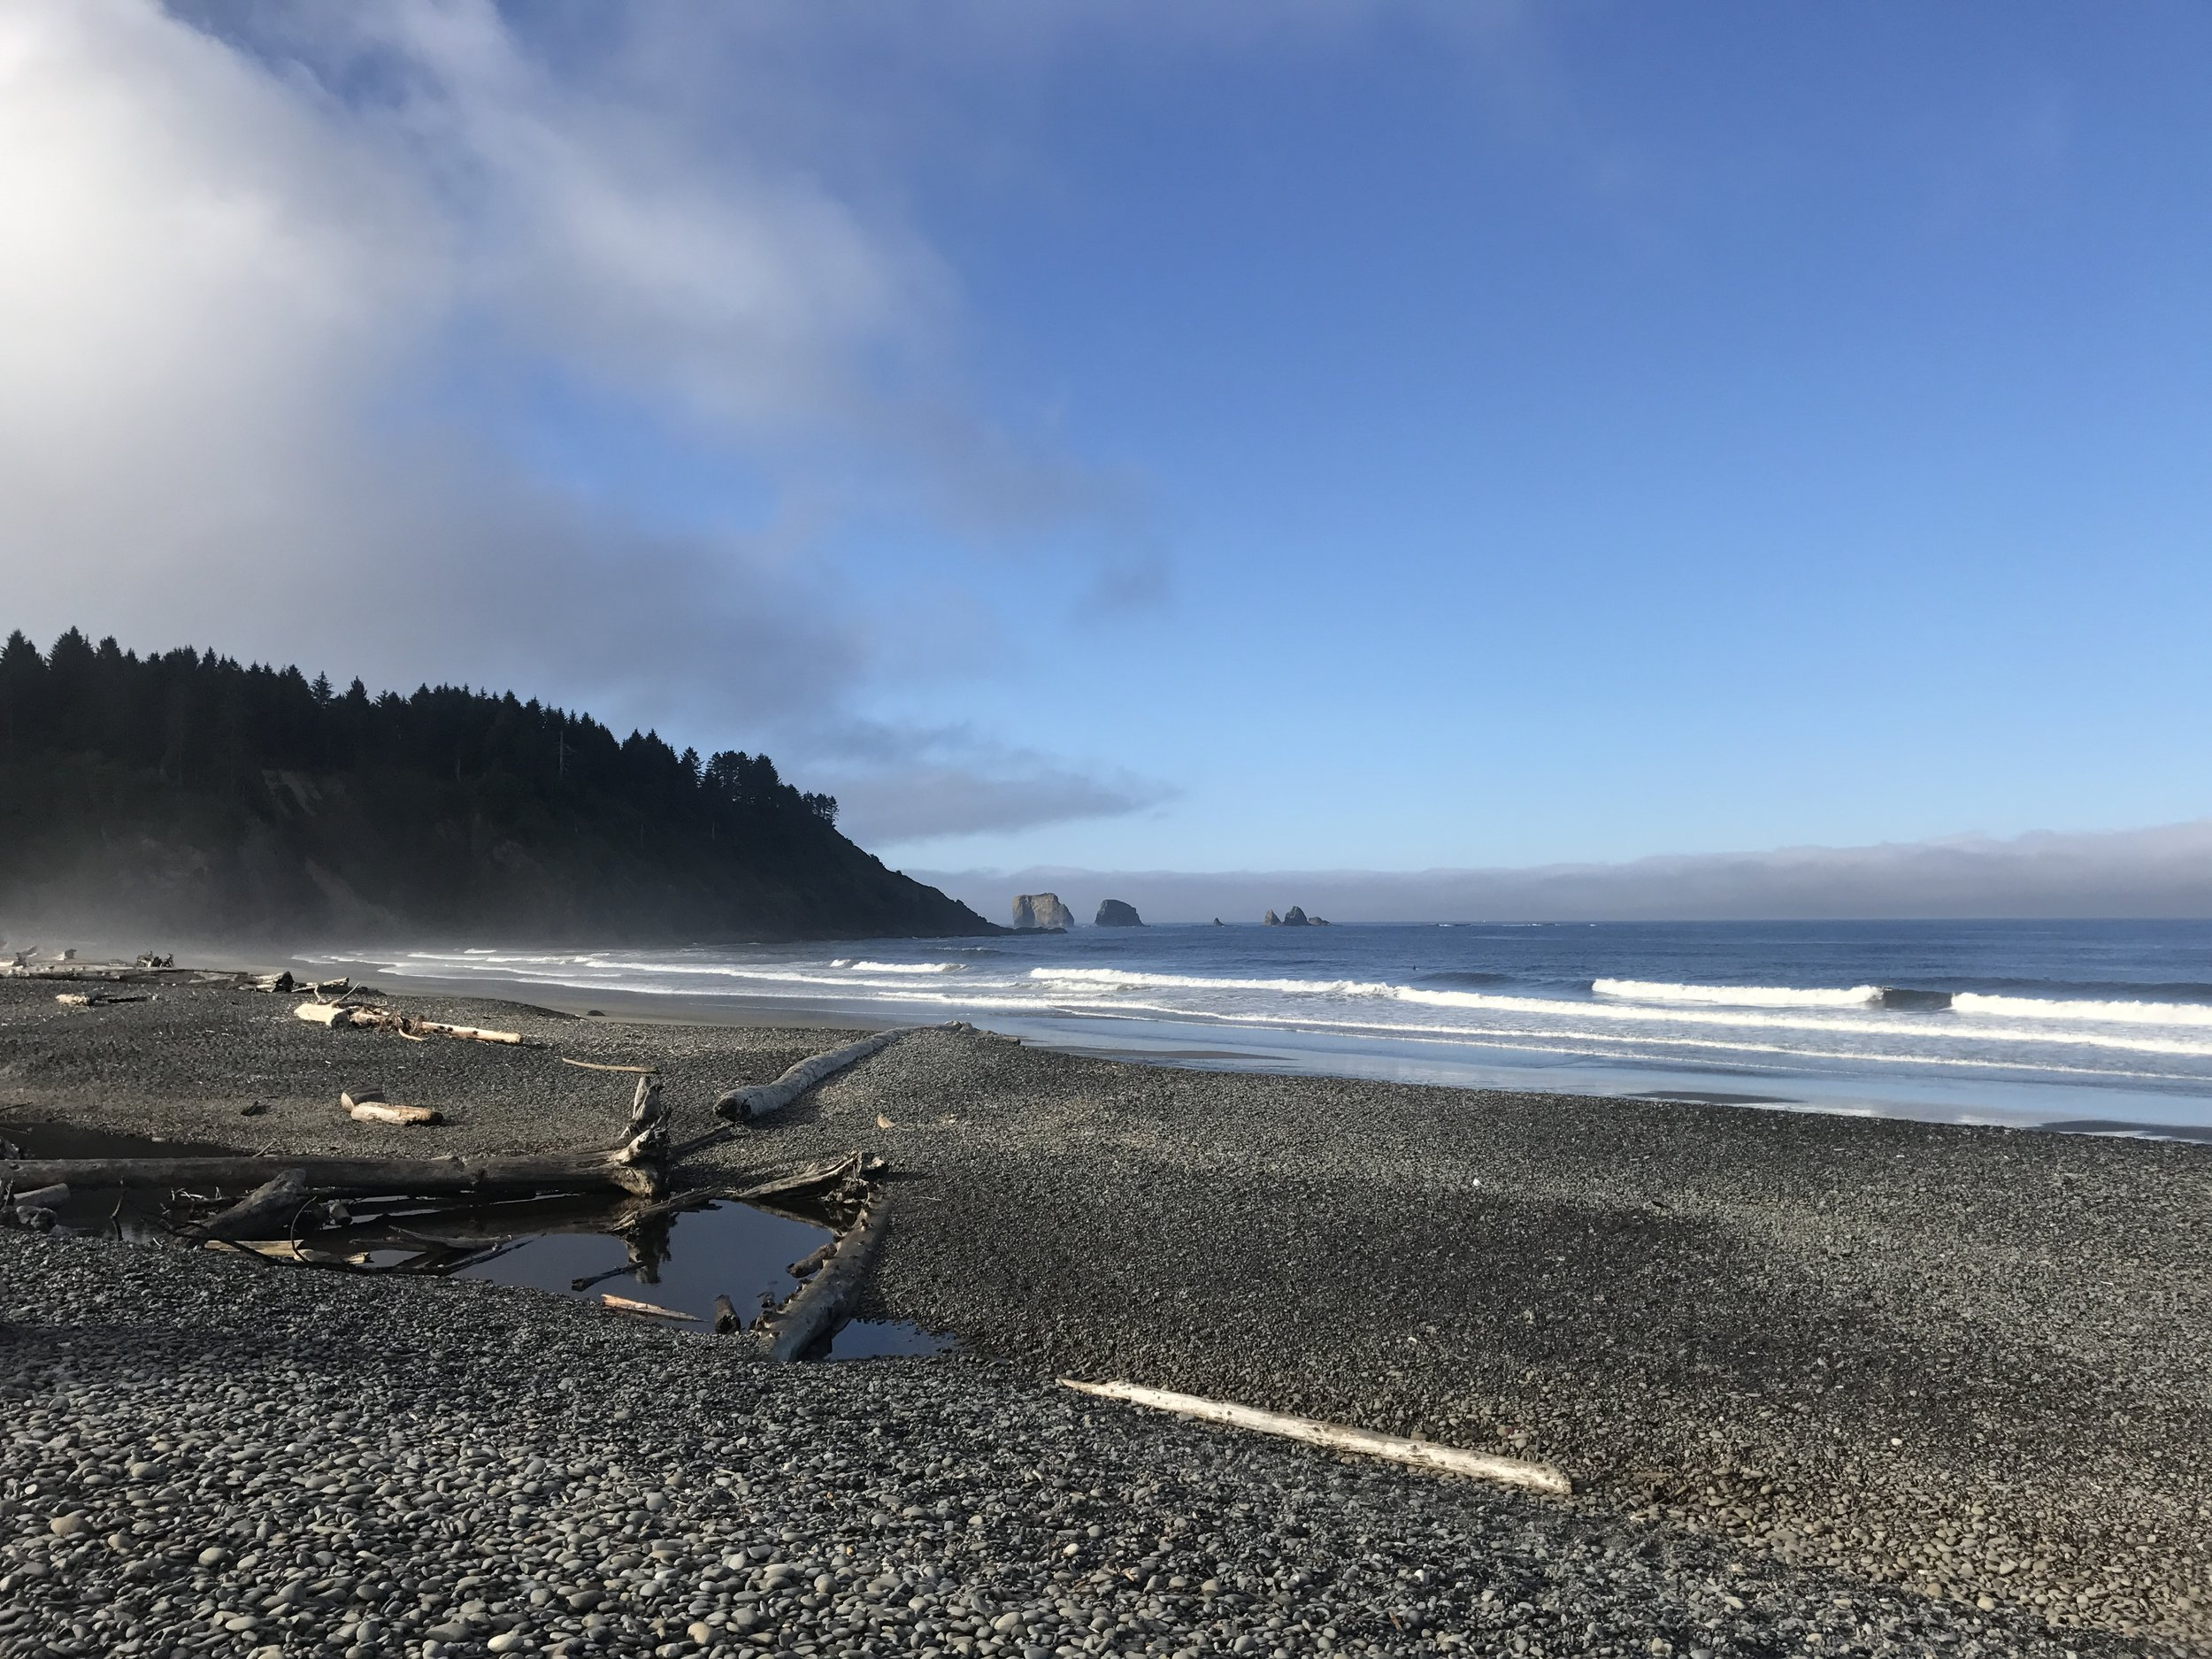 Morning at First Beach in La Push, WA